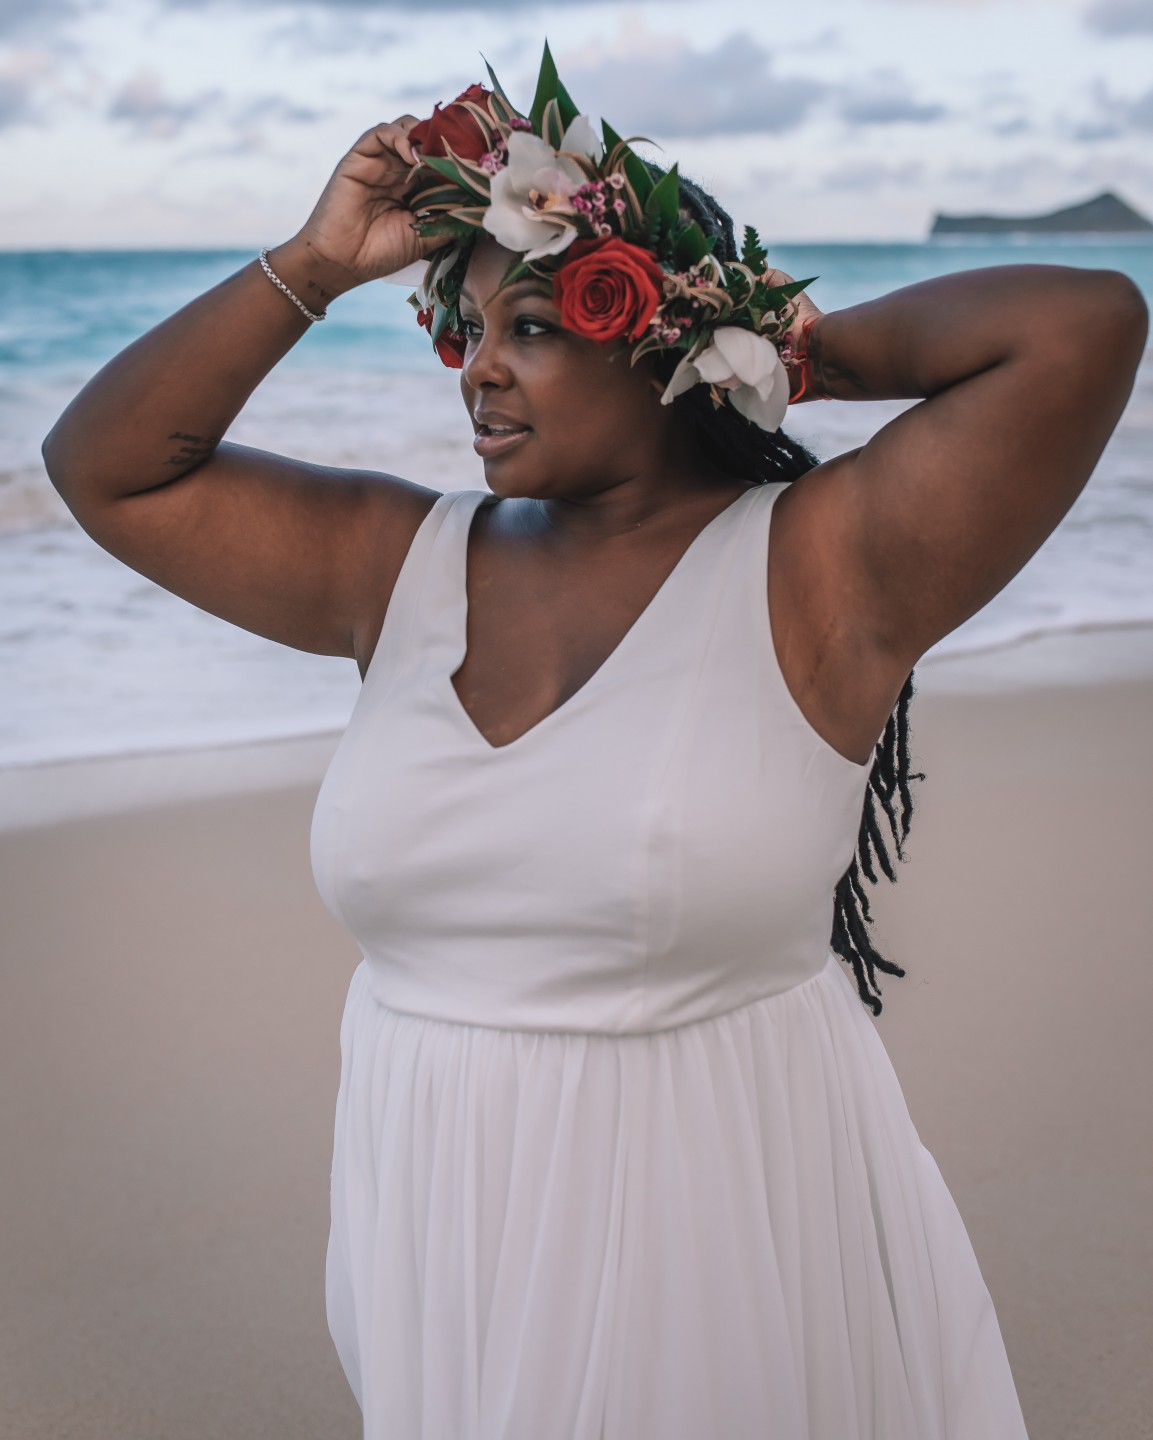 A young Black female stands on a beach, with a crown of tropical flowers on her head